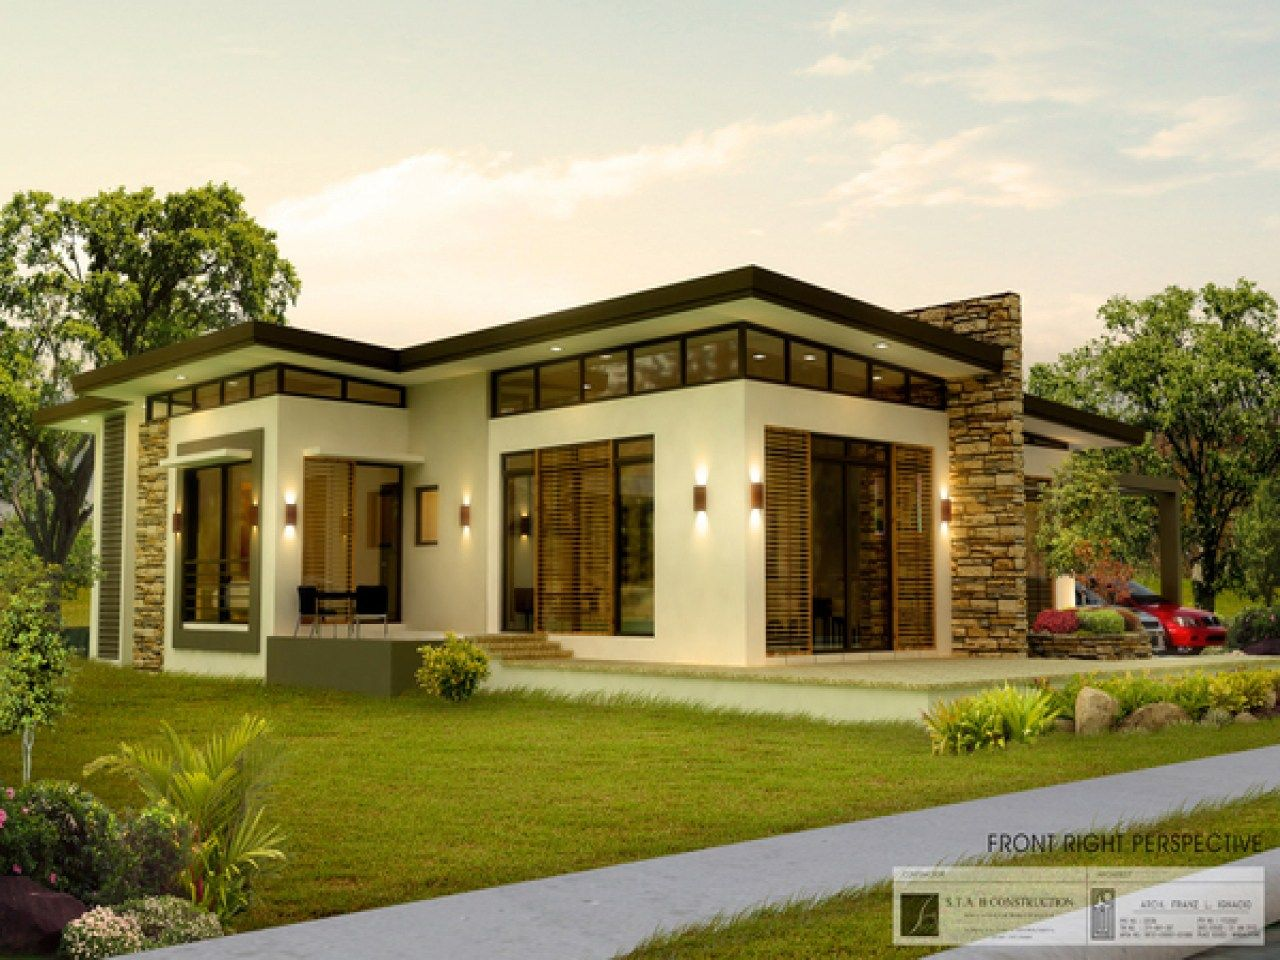 Home plans philippines bungalow house plans philippines design tokjanggutphoto bungalow design Modern small bungalow designs